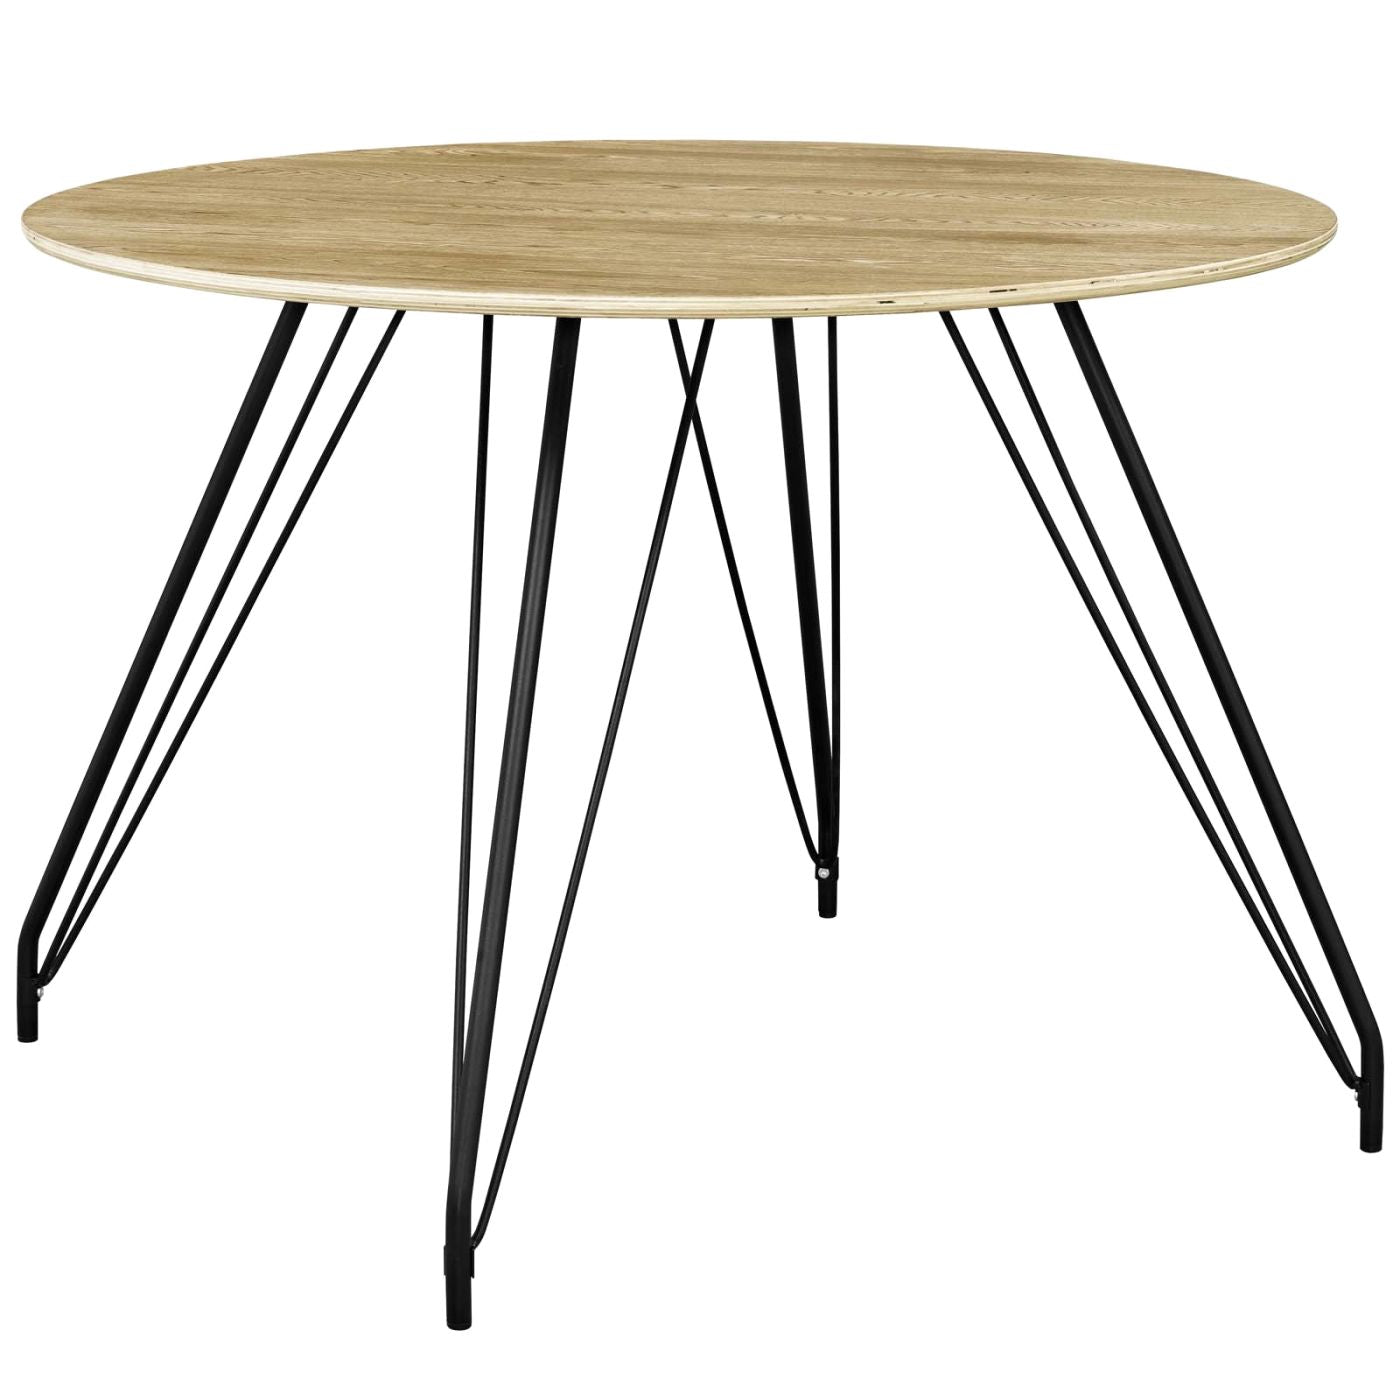 Modway Dining Tables On Sale Eei 2670 Nat Set Satellite Mid Century Modern Round Dining Table Only Only 242 05 At Contemporary Furniture Warehouse